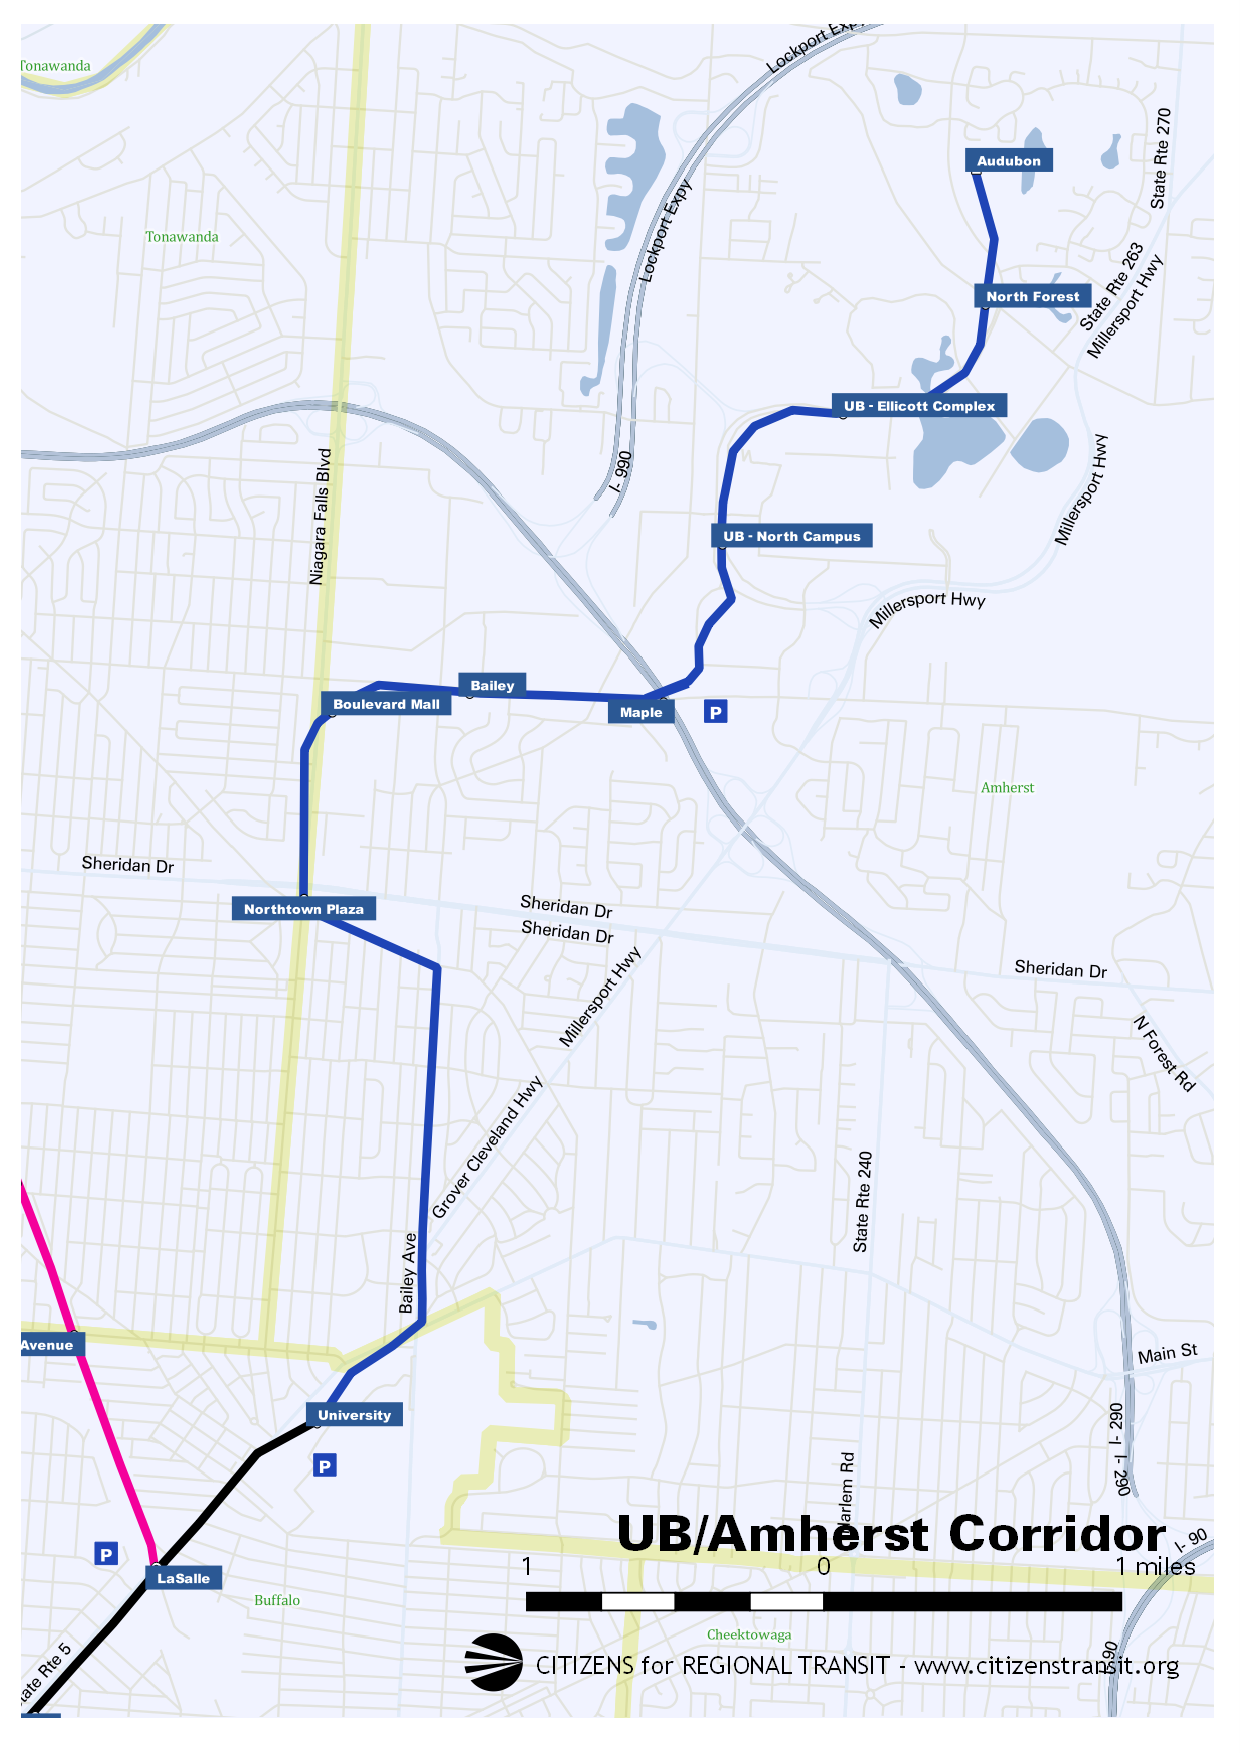 CRT route map